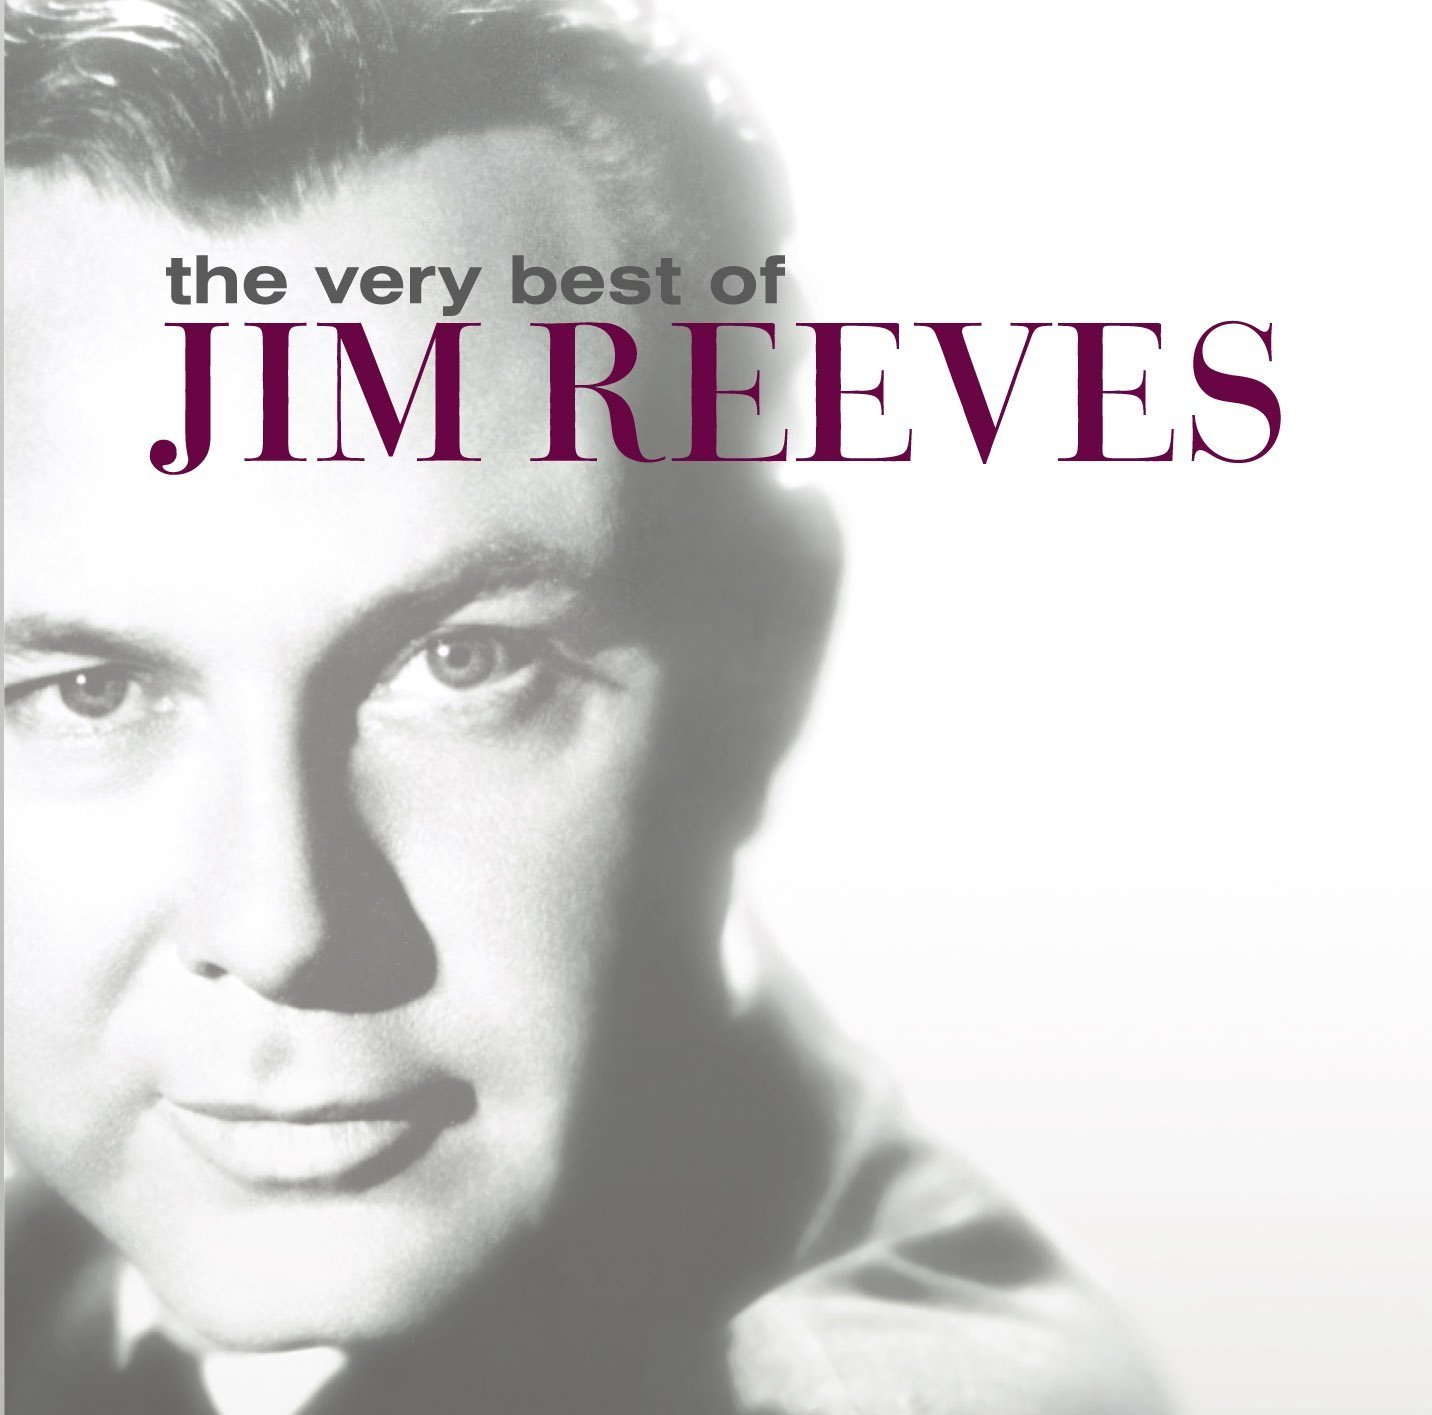 Jim reeves 12 songs of christmas cd image - About Christmas 2018